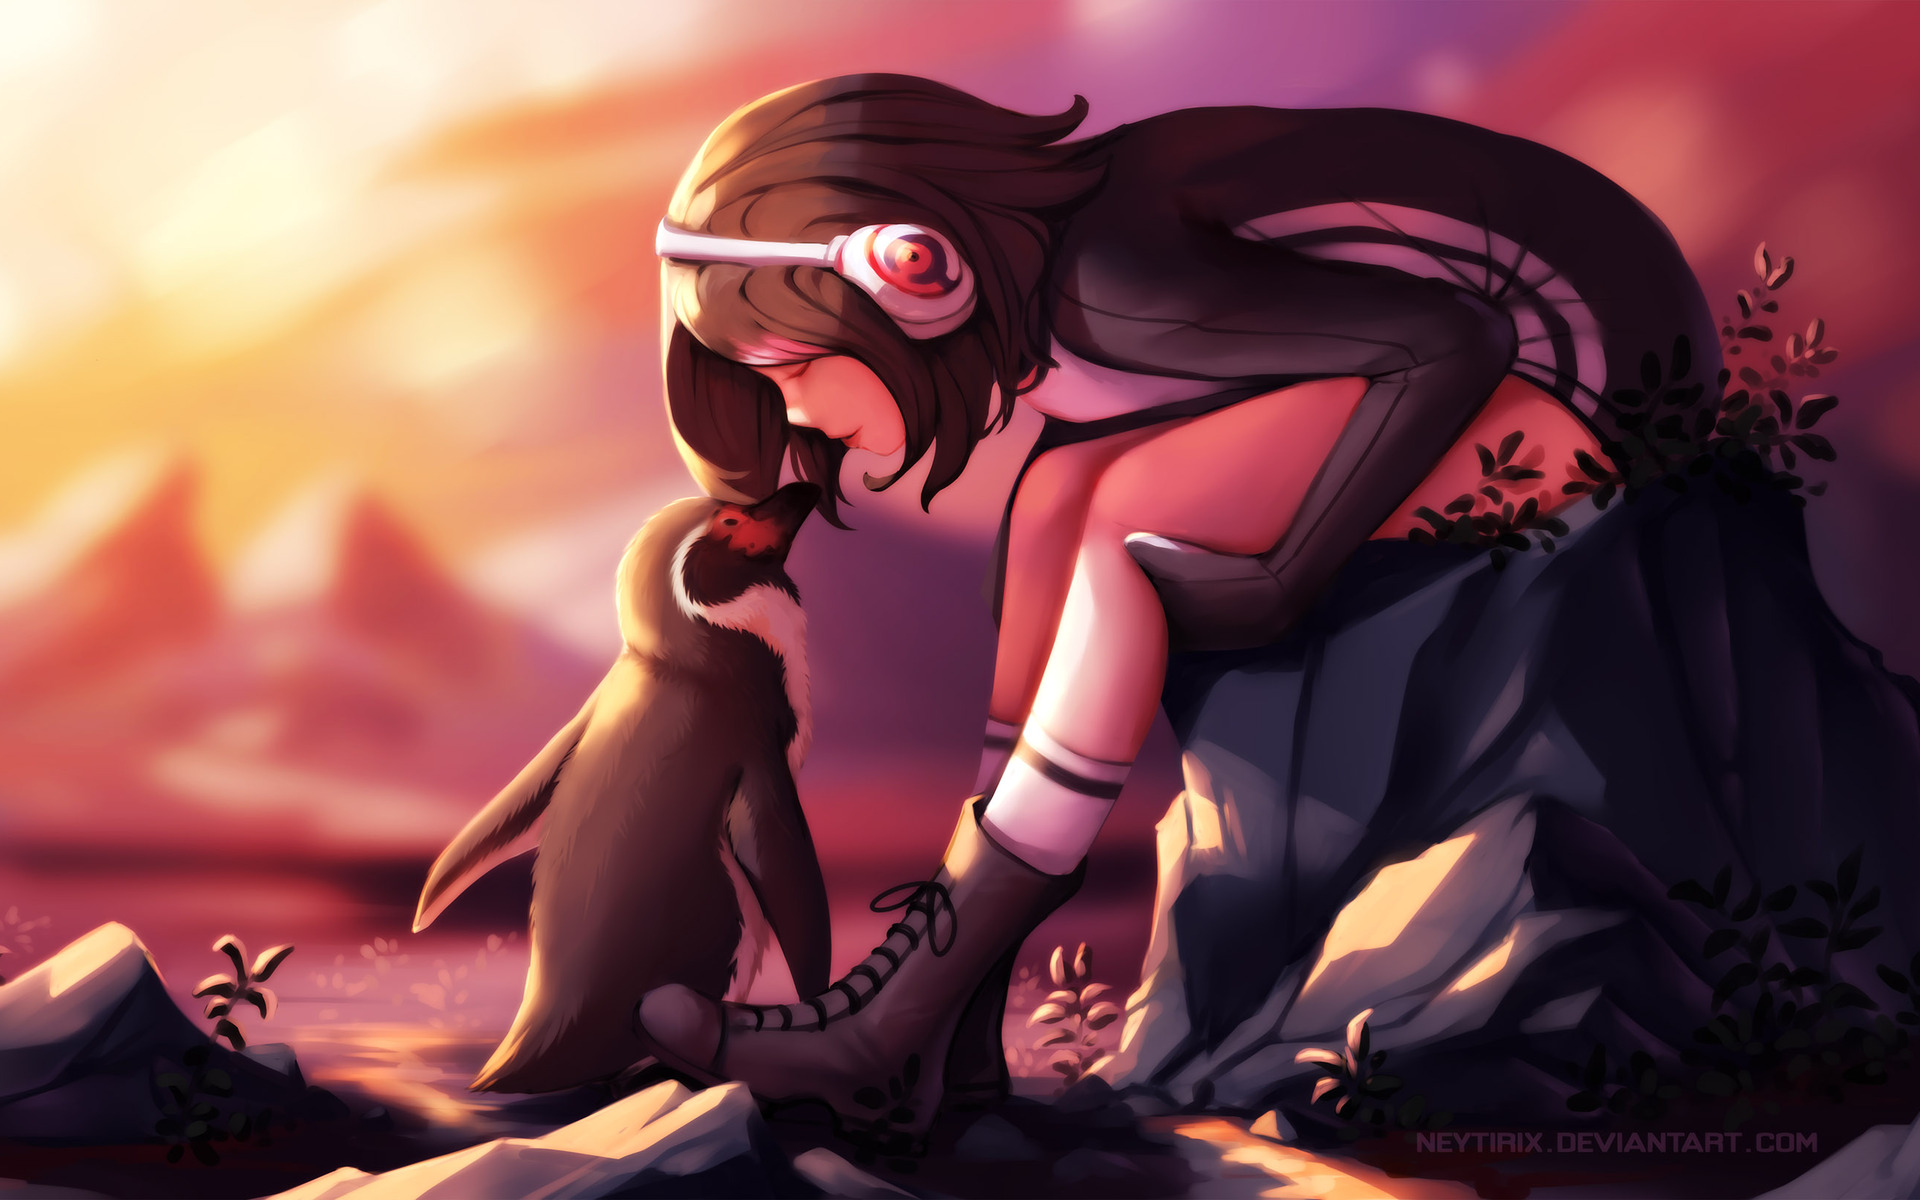 penguin-girl-love-artwork-b0.jpg